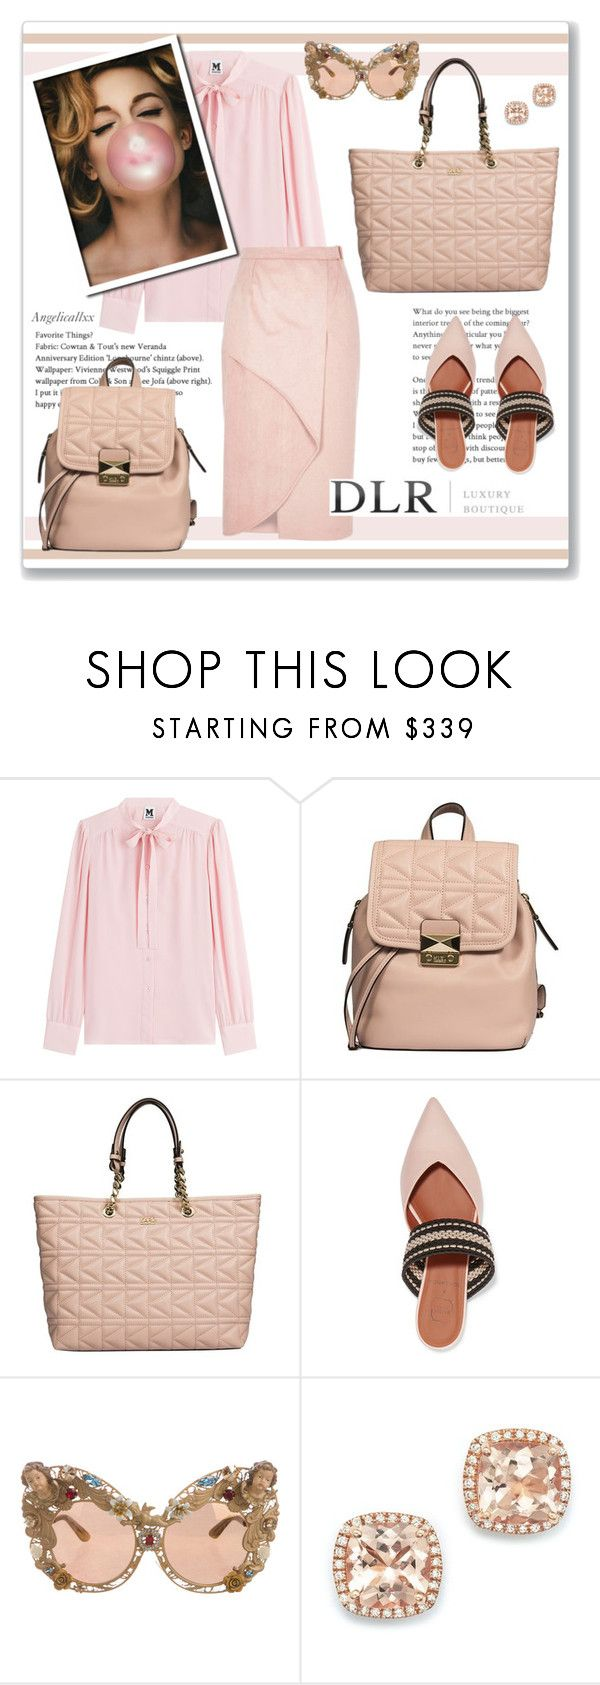 """DLRBOUTIQUE.COM"" by angelicallxx ❤ liked on Polyvore featuring M Missoni, Karl Lagerfeld, Malone Souliers, Dolce&Gabbana, River Island and Bloomingdale's"